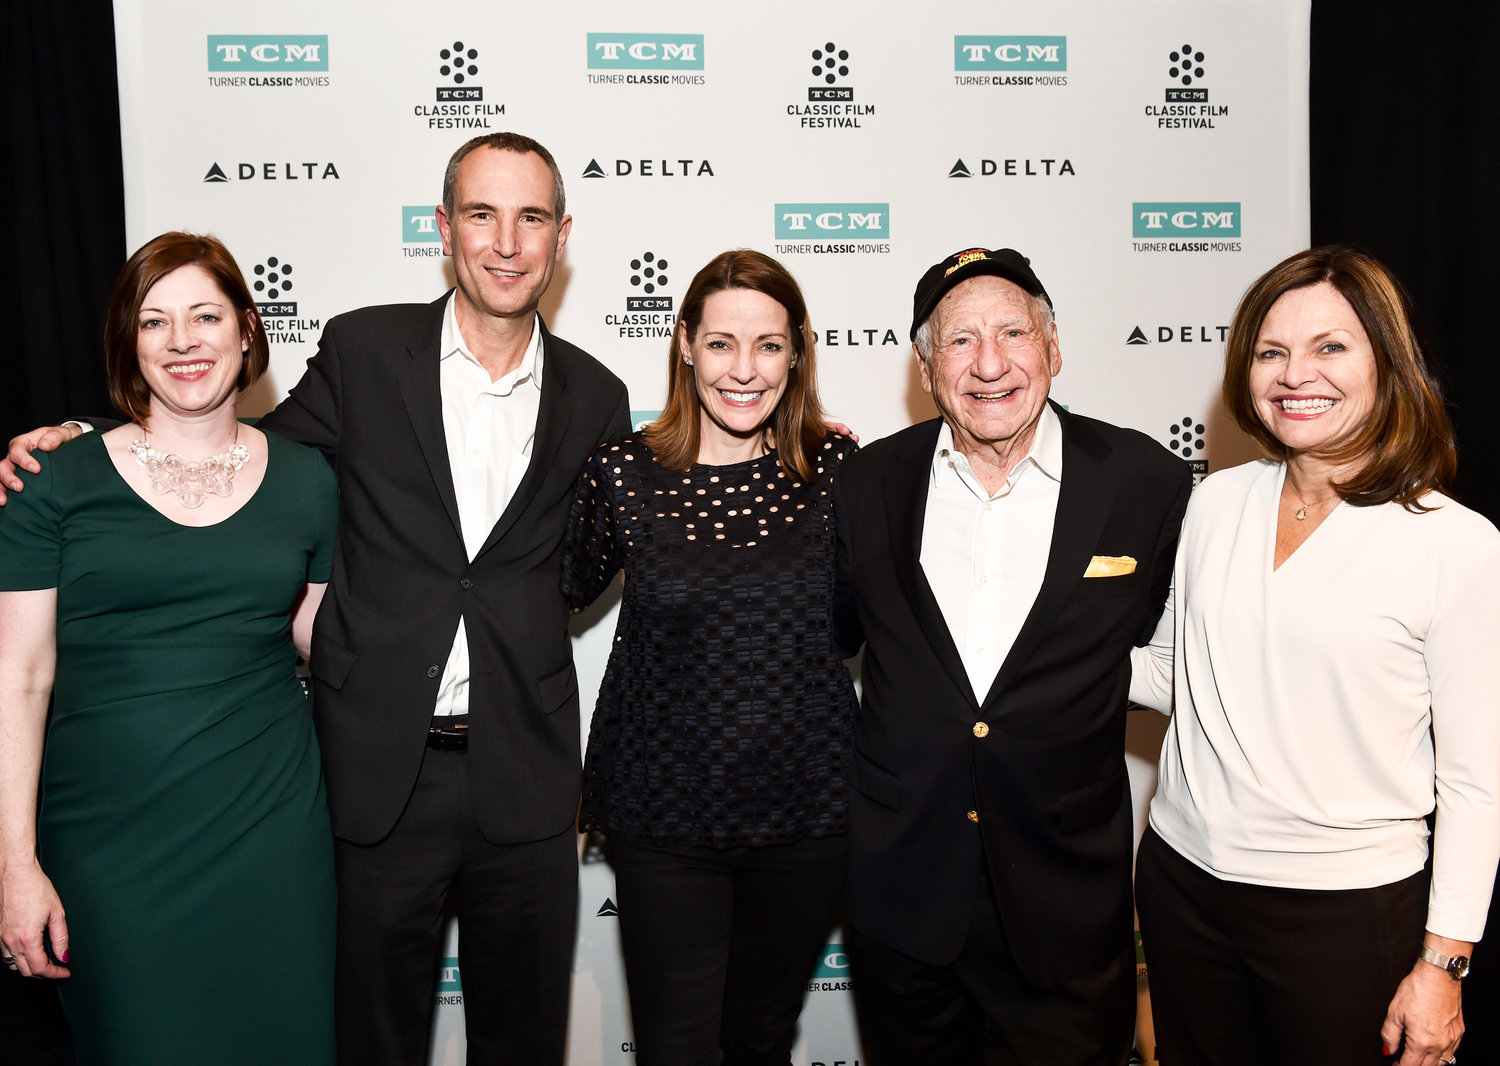 Left to right: Genevieve McGillicuddy, Director, TCM Classic Film Festival; Charlie Tabesh, Senior Vice President Programming and Production; Turner Classic Movies; Jennifer Dorian, General Manger, Turner Classic Movies; Mel Brooks; Pola Changnon, Senior Vice President, Creative, Brand and Marketing, Turner Classic Movies